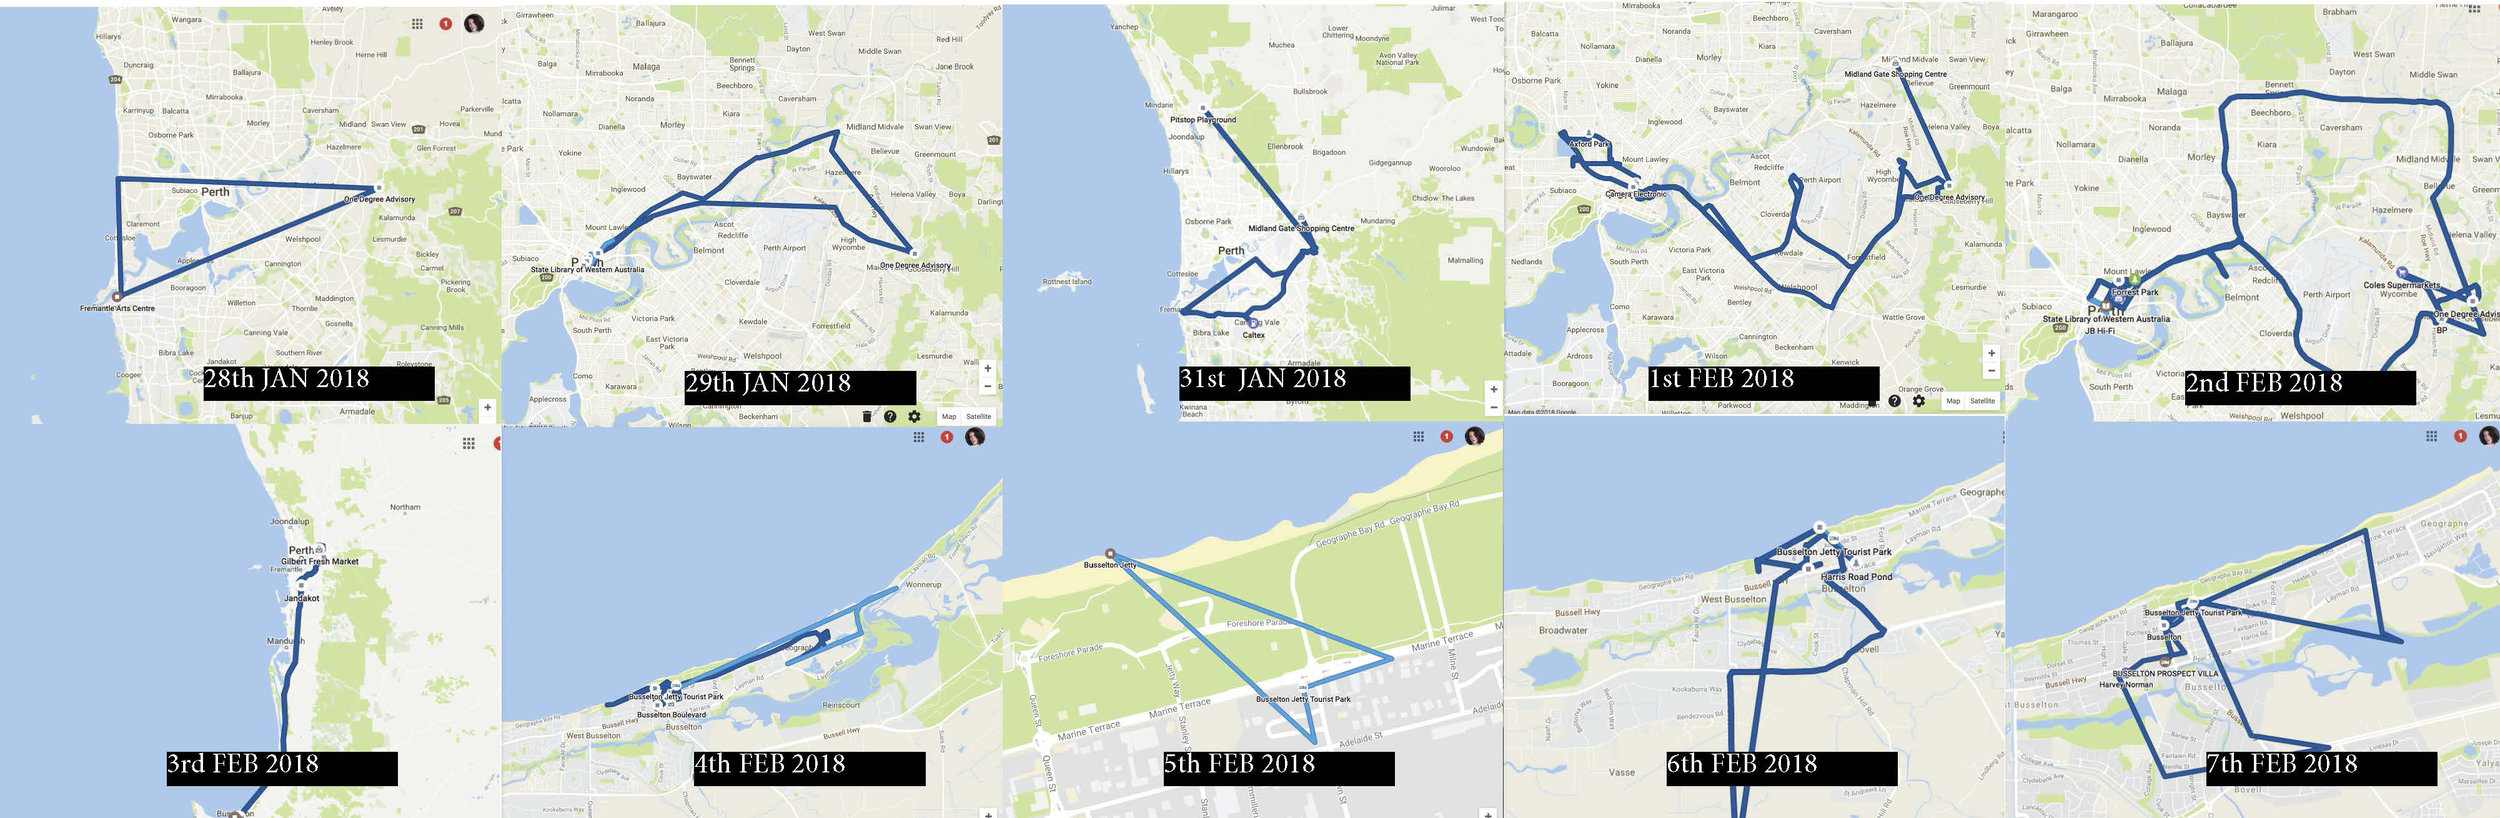 MAPS overview of my time2_Side_2.jpg